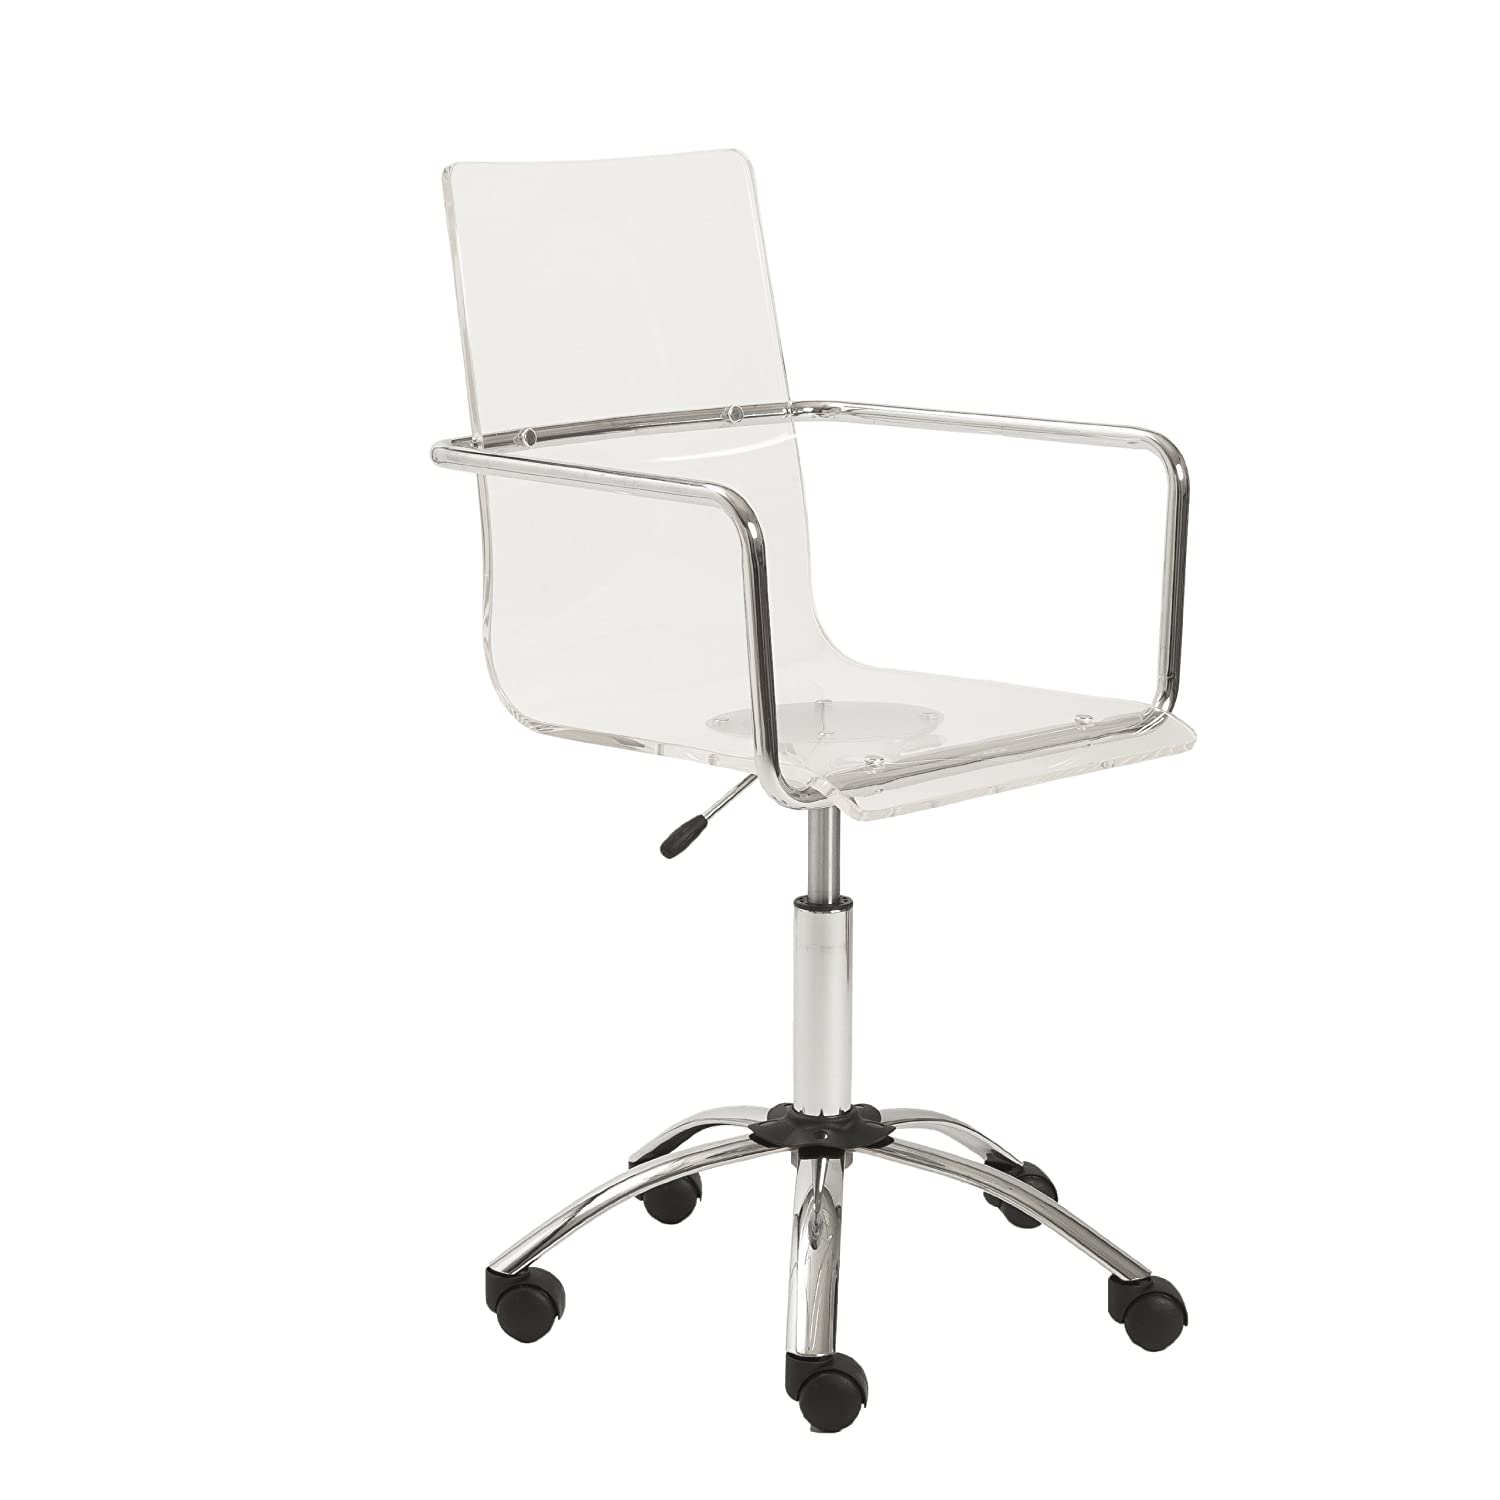 Amazoncom Euro Style Chloe Clear Acrylic Adjustable Office Chair - Clear perspex chairs